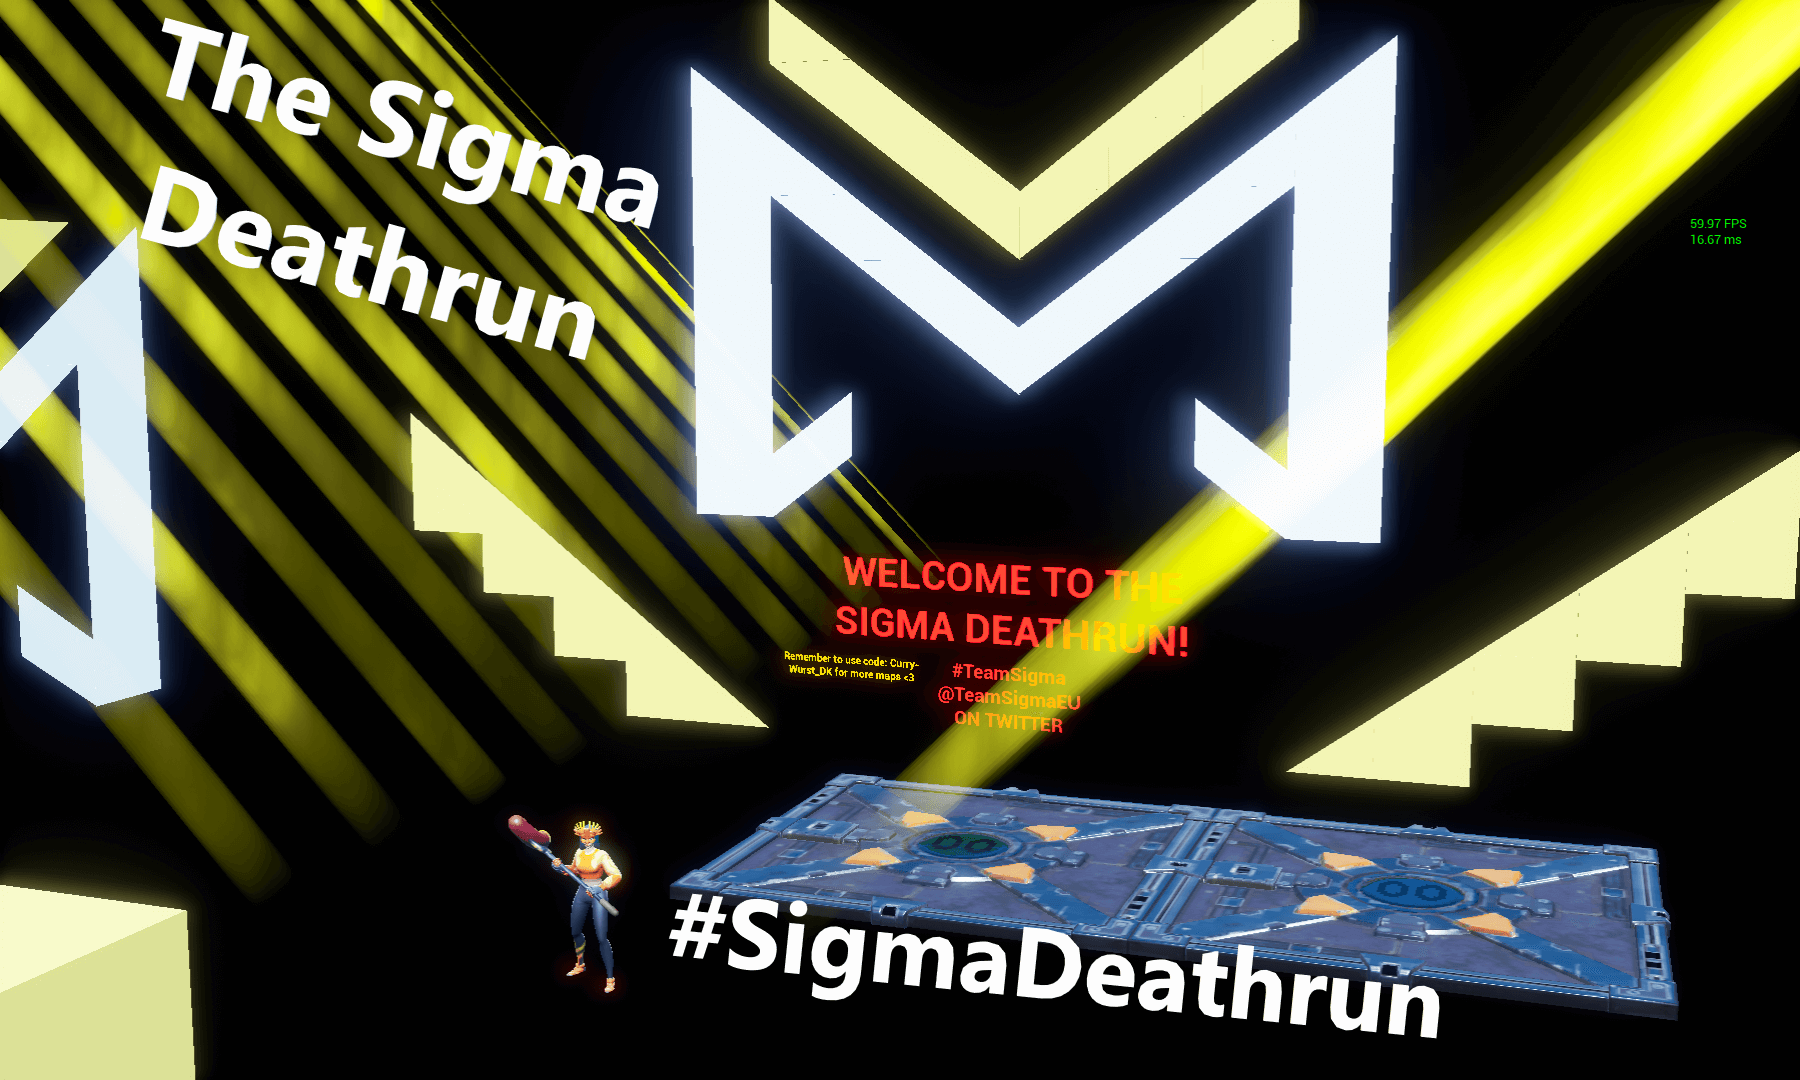 THE SIGMA DEATHRUN